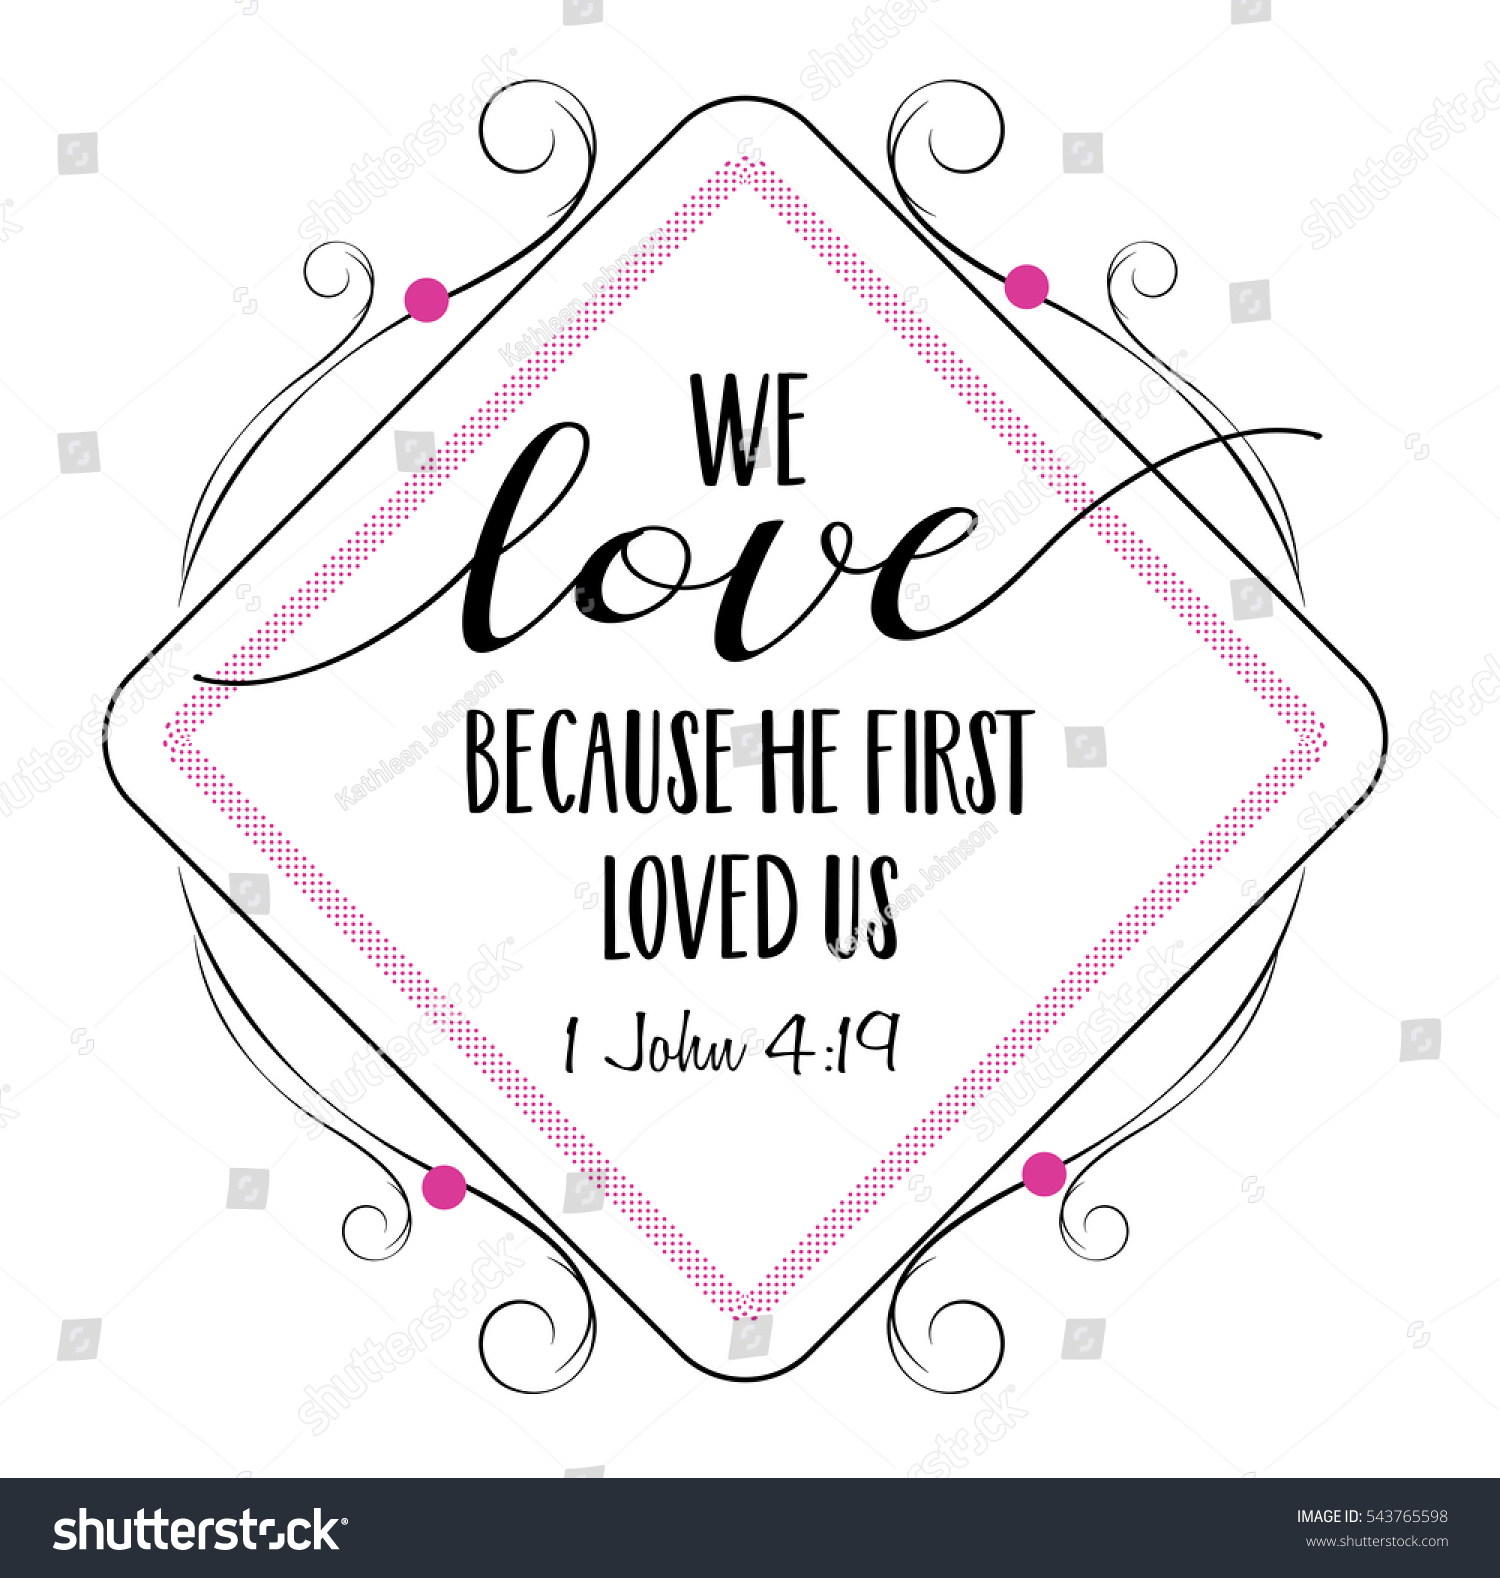 hight resolution of we love because he first loved us bible scripture verse typography design from 1 john with elegant pink and black frame